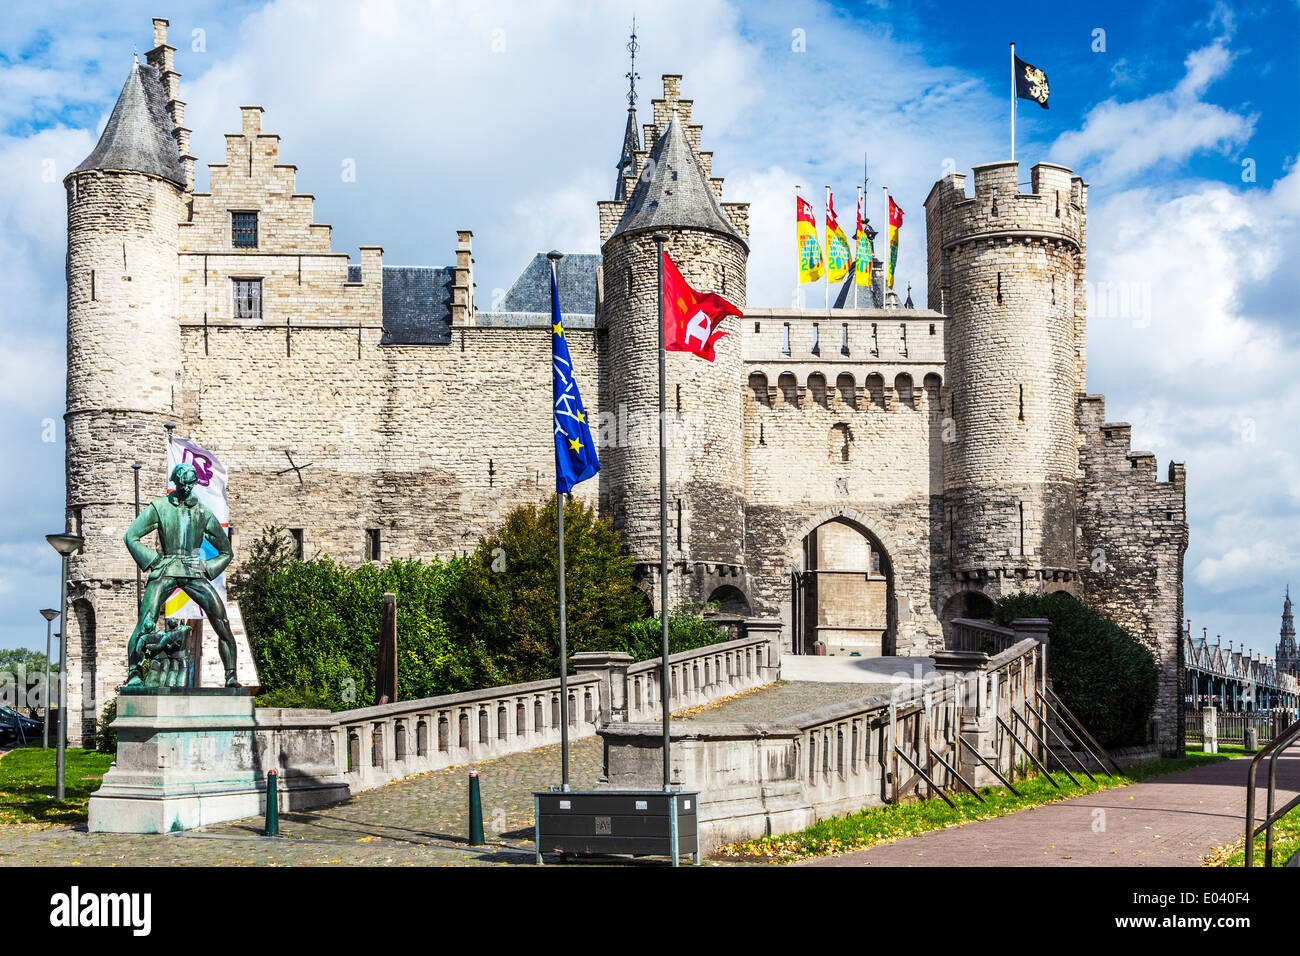 The Het Steen or Stone Castle, a medieval fortress on the banks of the River Scheldt in Antwerp, Belgium. - Stock Image